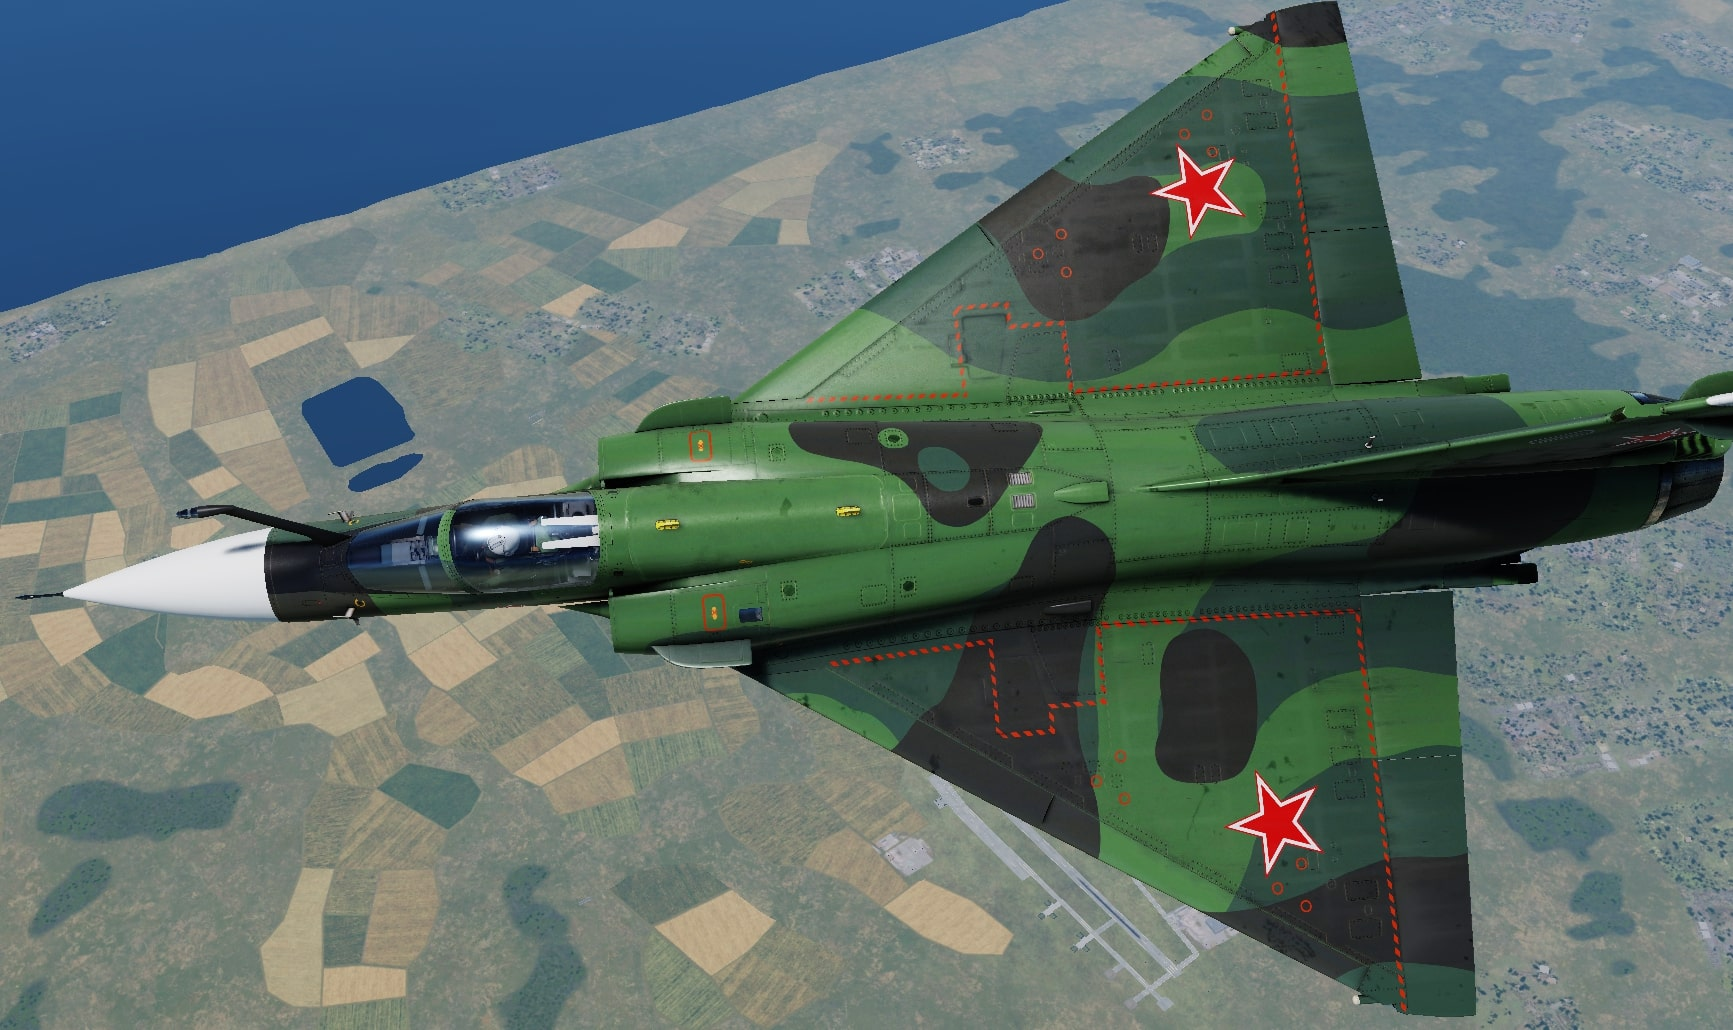 Mirage 2000C Redfor Livery (Soviet or Polish; Fictional)